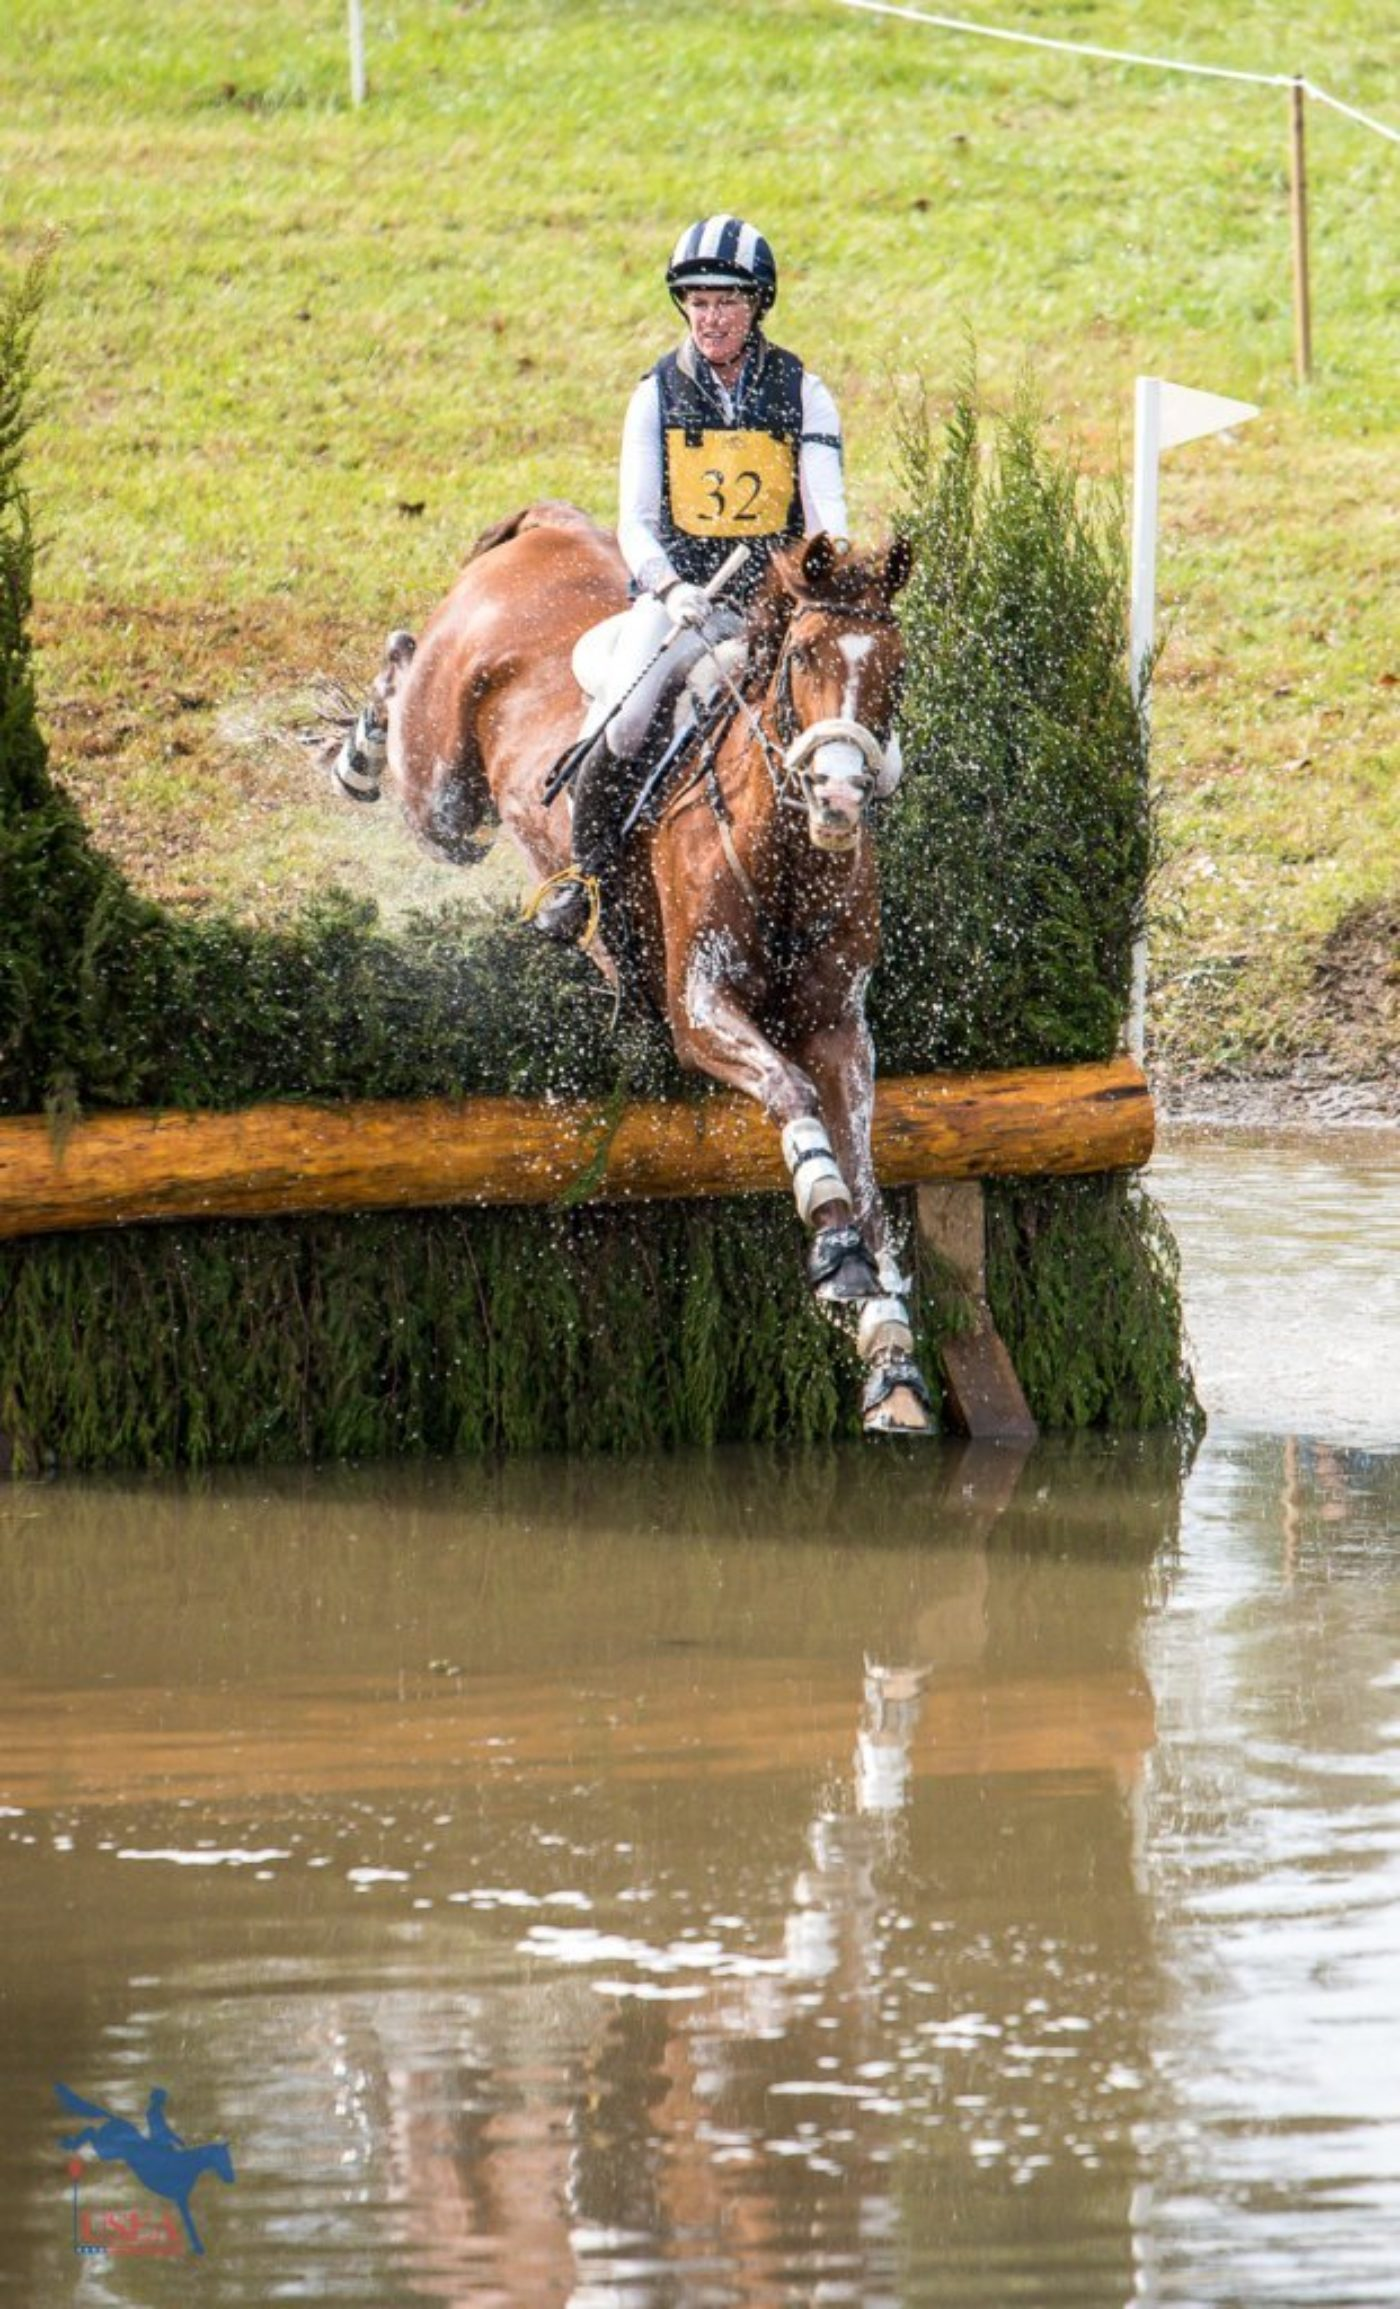 Allie Knowles and Business Class splashing through the Frog Pond. USEA/Jessica Duffy Photo.